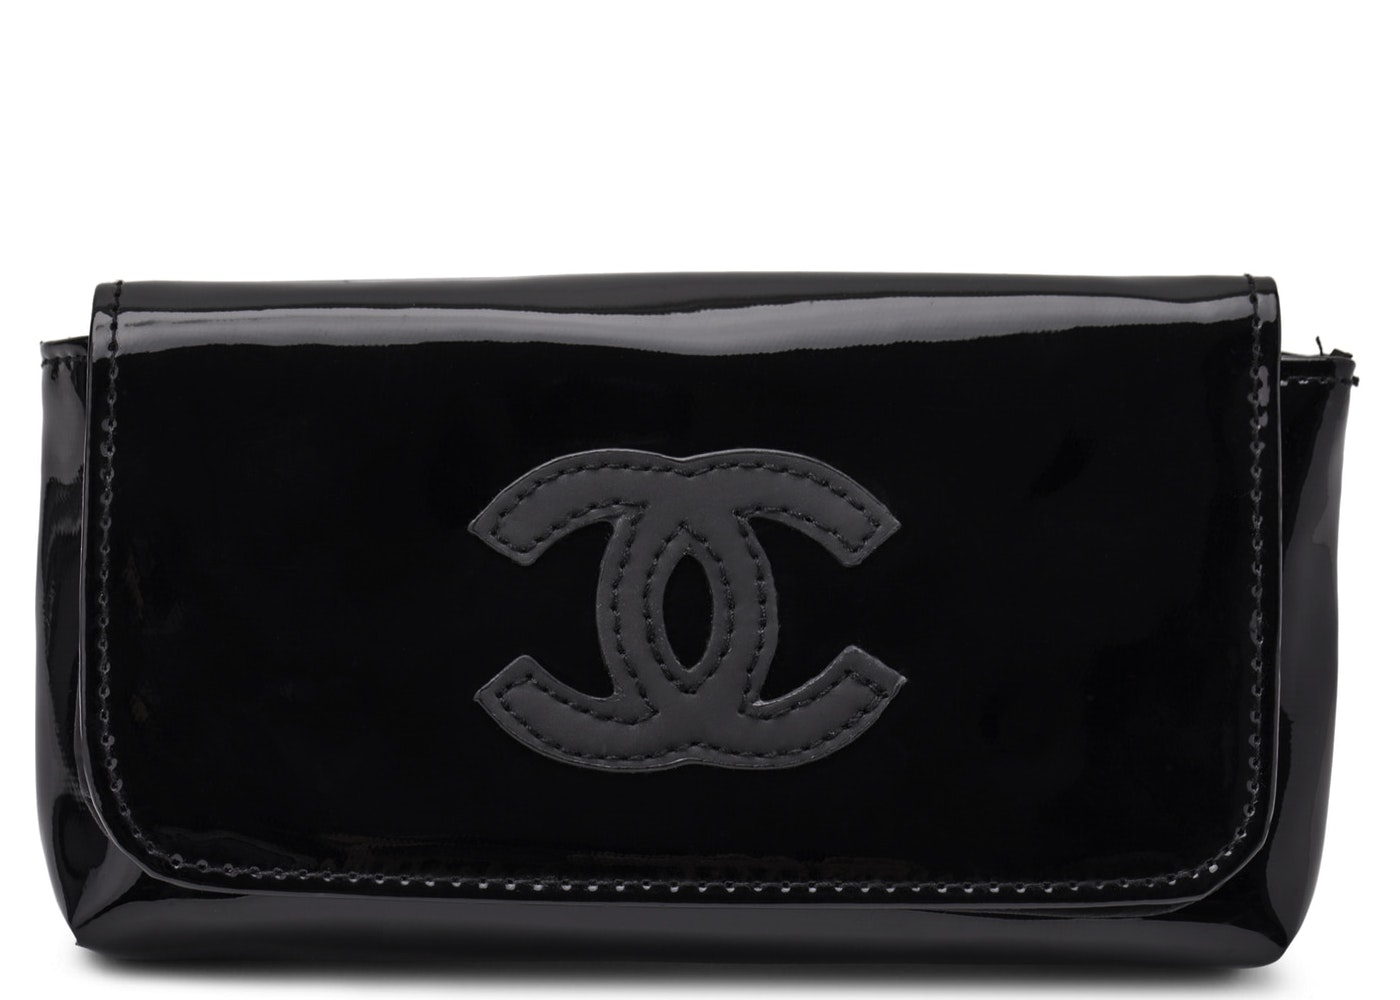 Chanel VIP Belt Bag Black